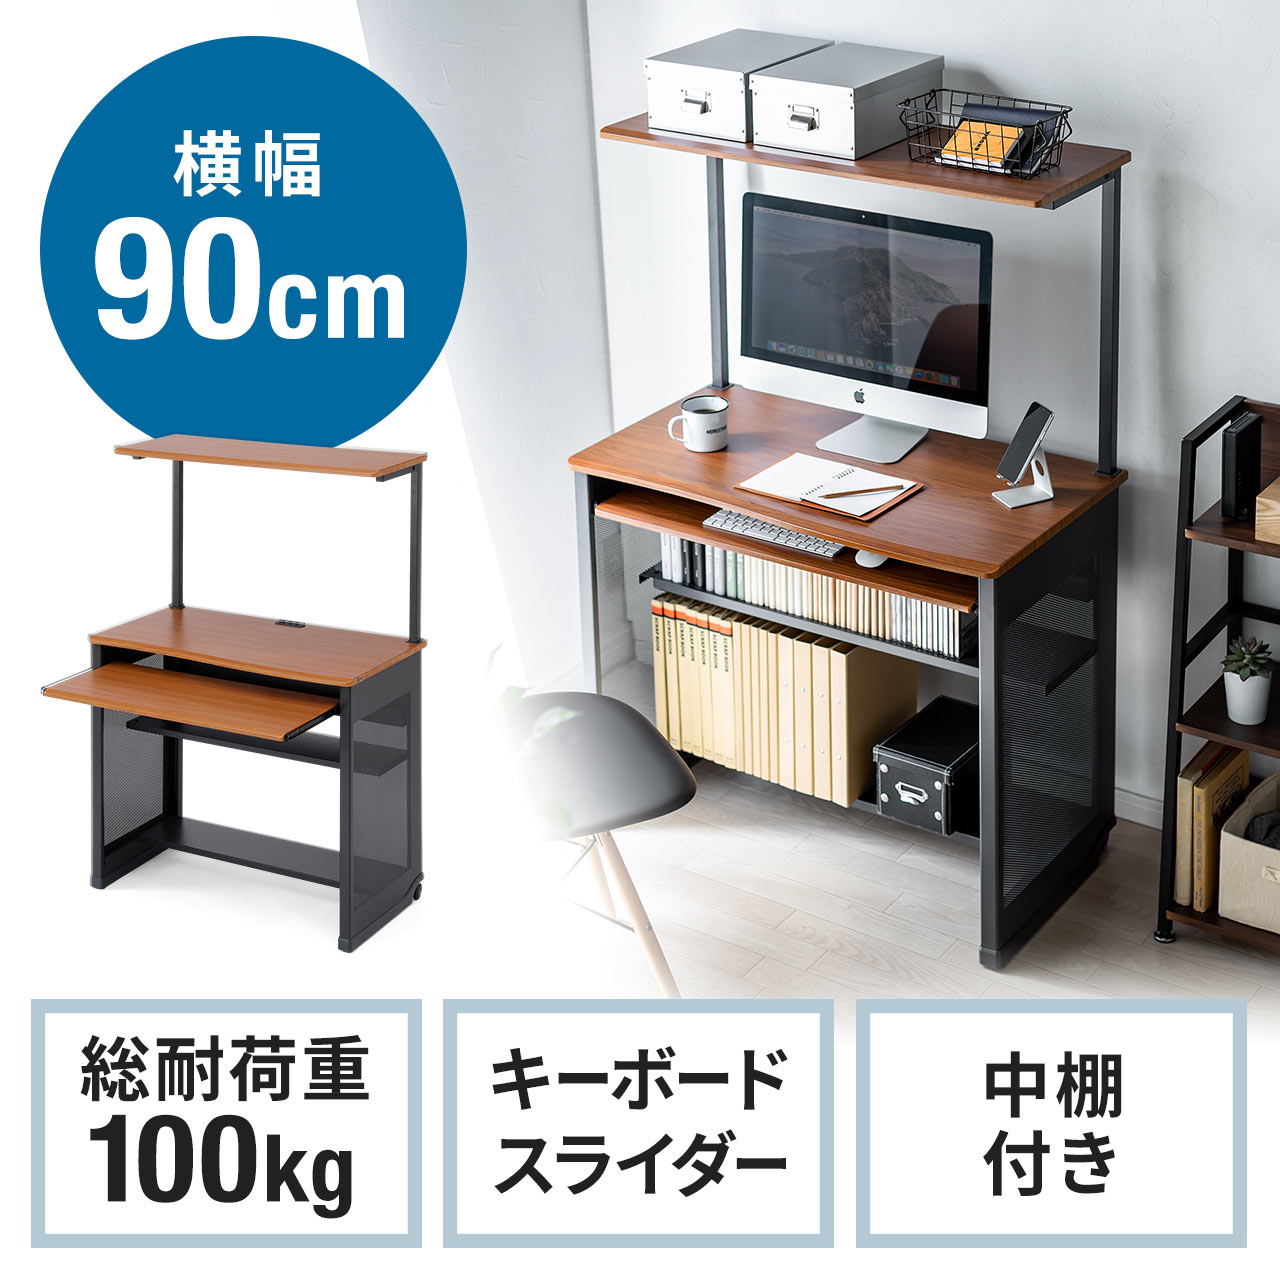 http://direct.sanwa.co.jp/images/goods/100-DESK065_MDX.JPG